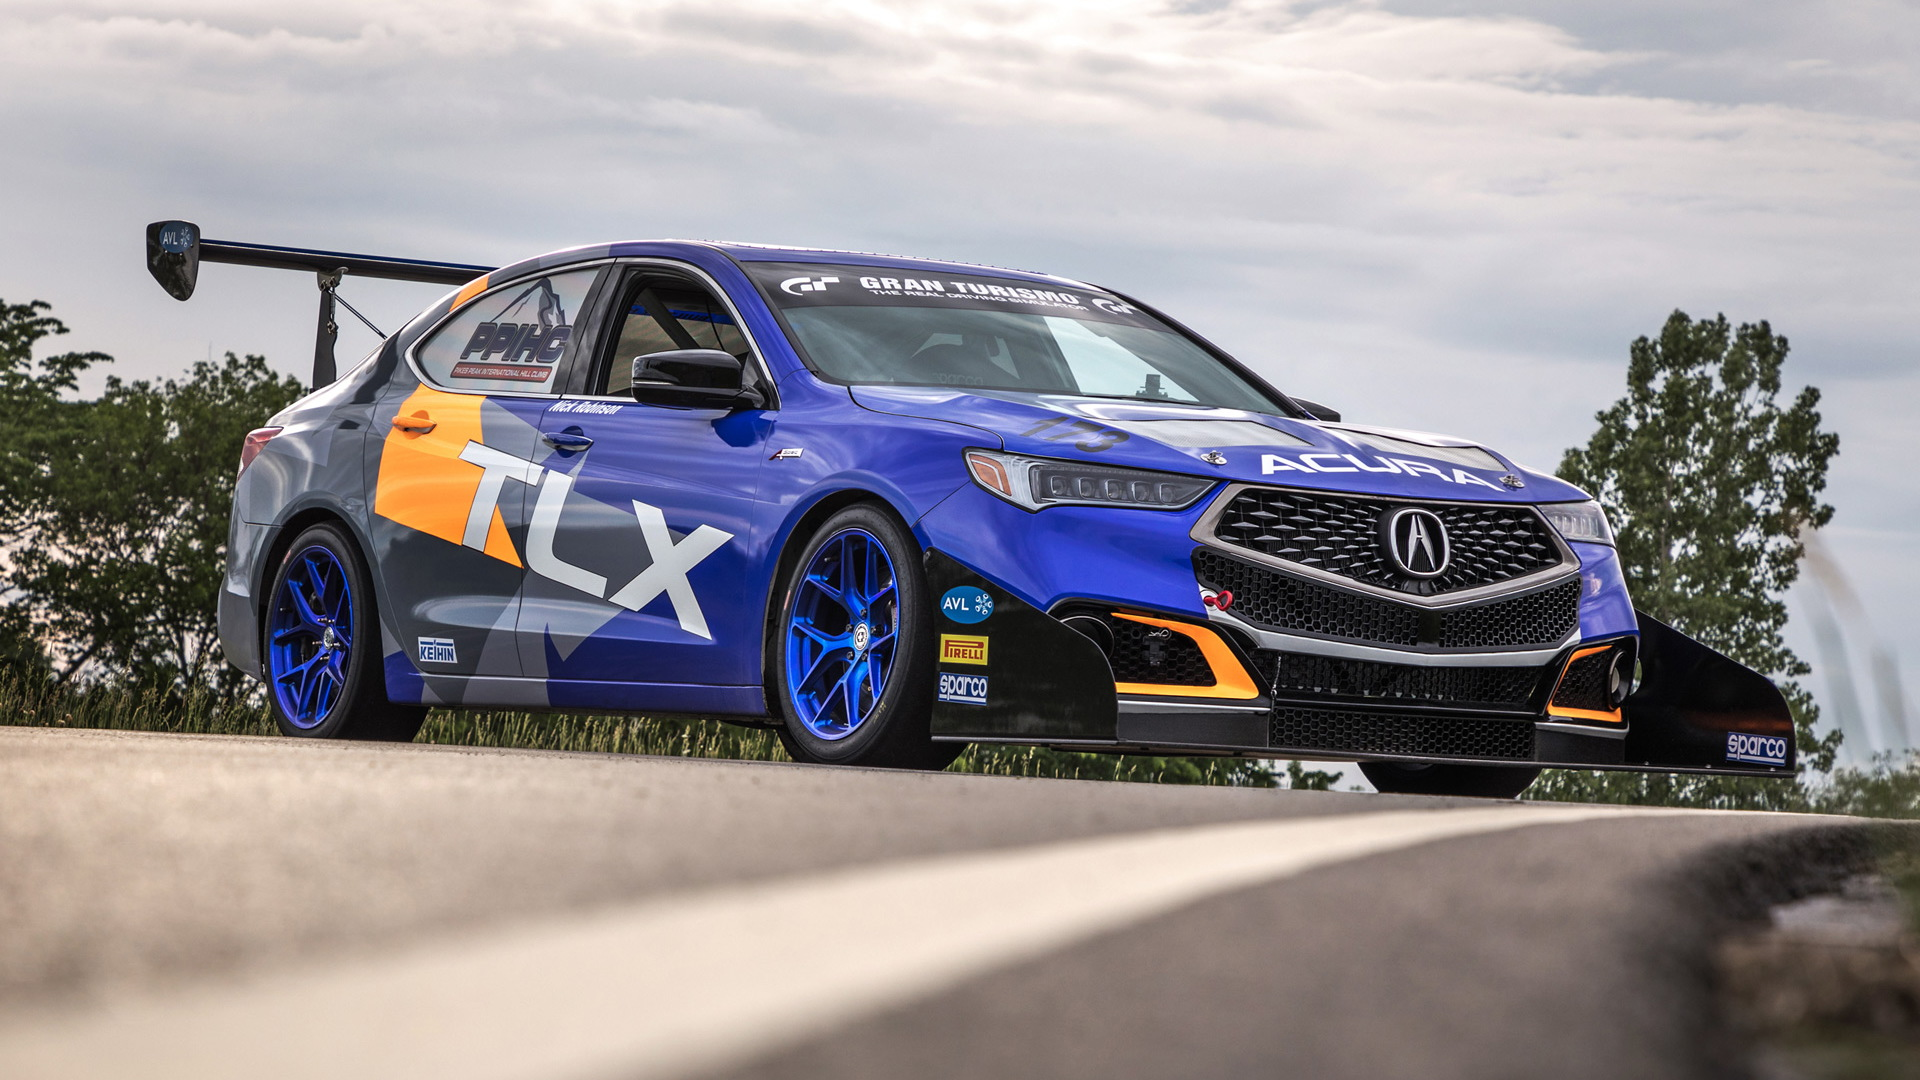 2018 Acura TLX A-Spec ready for 2018 Pikes Peak International Hill Climb